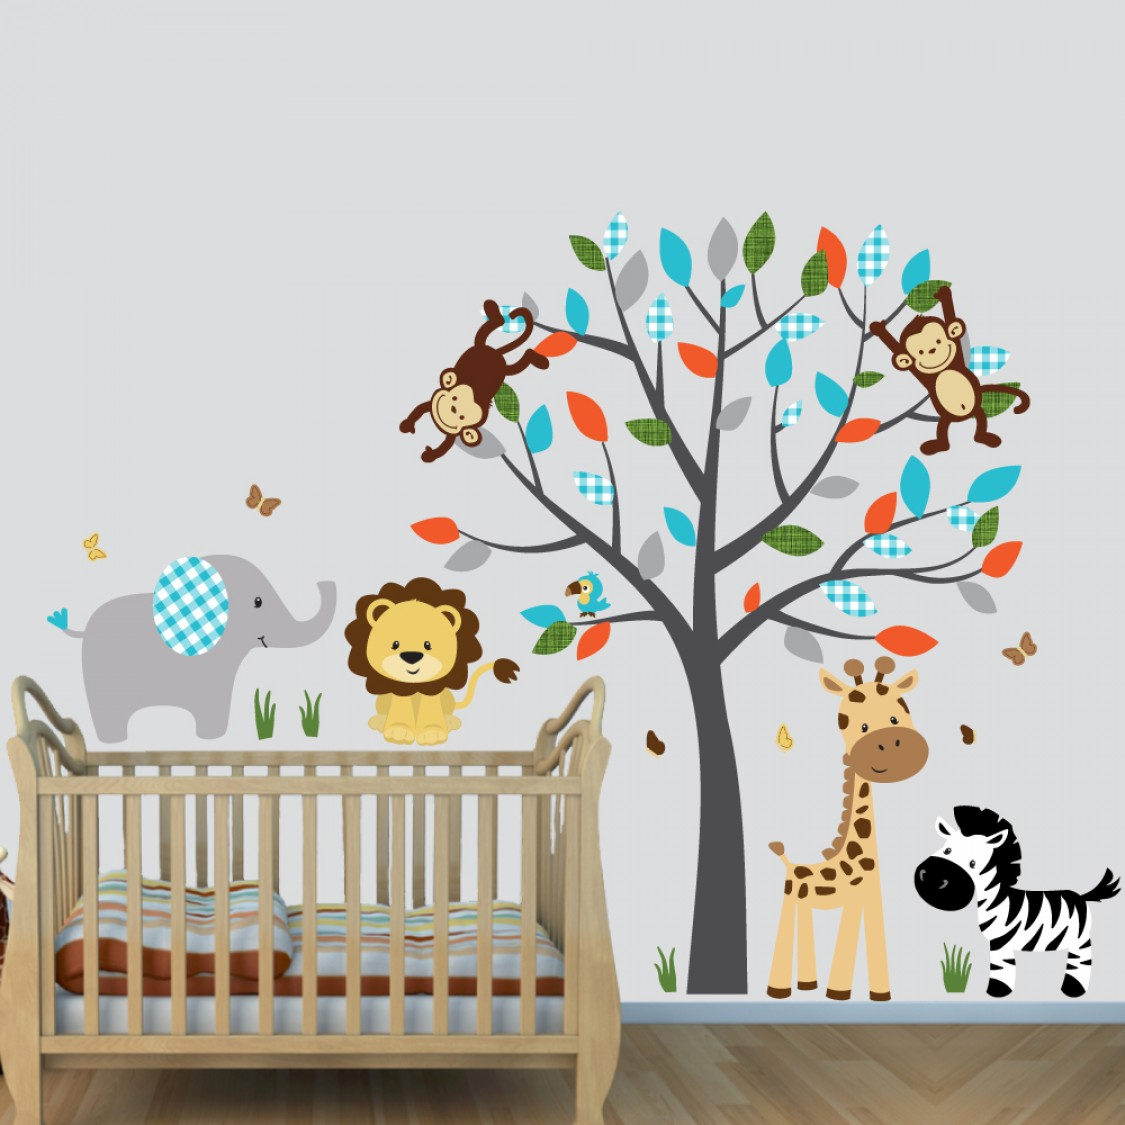 Gray Wall Decals Jungle With Elephant Wall Art For Play Rooms